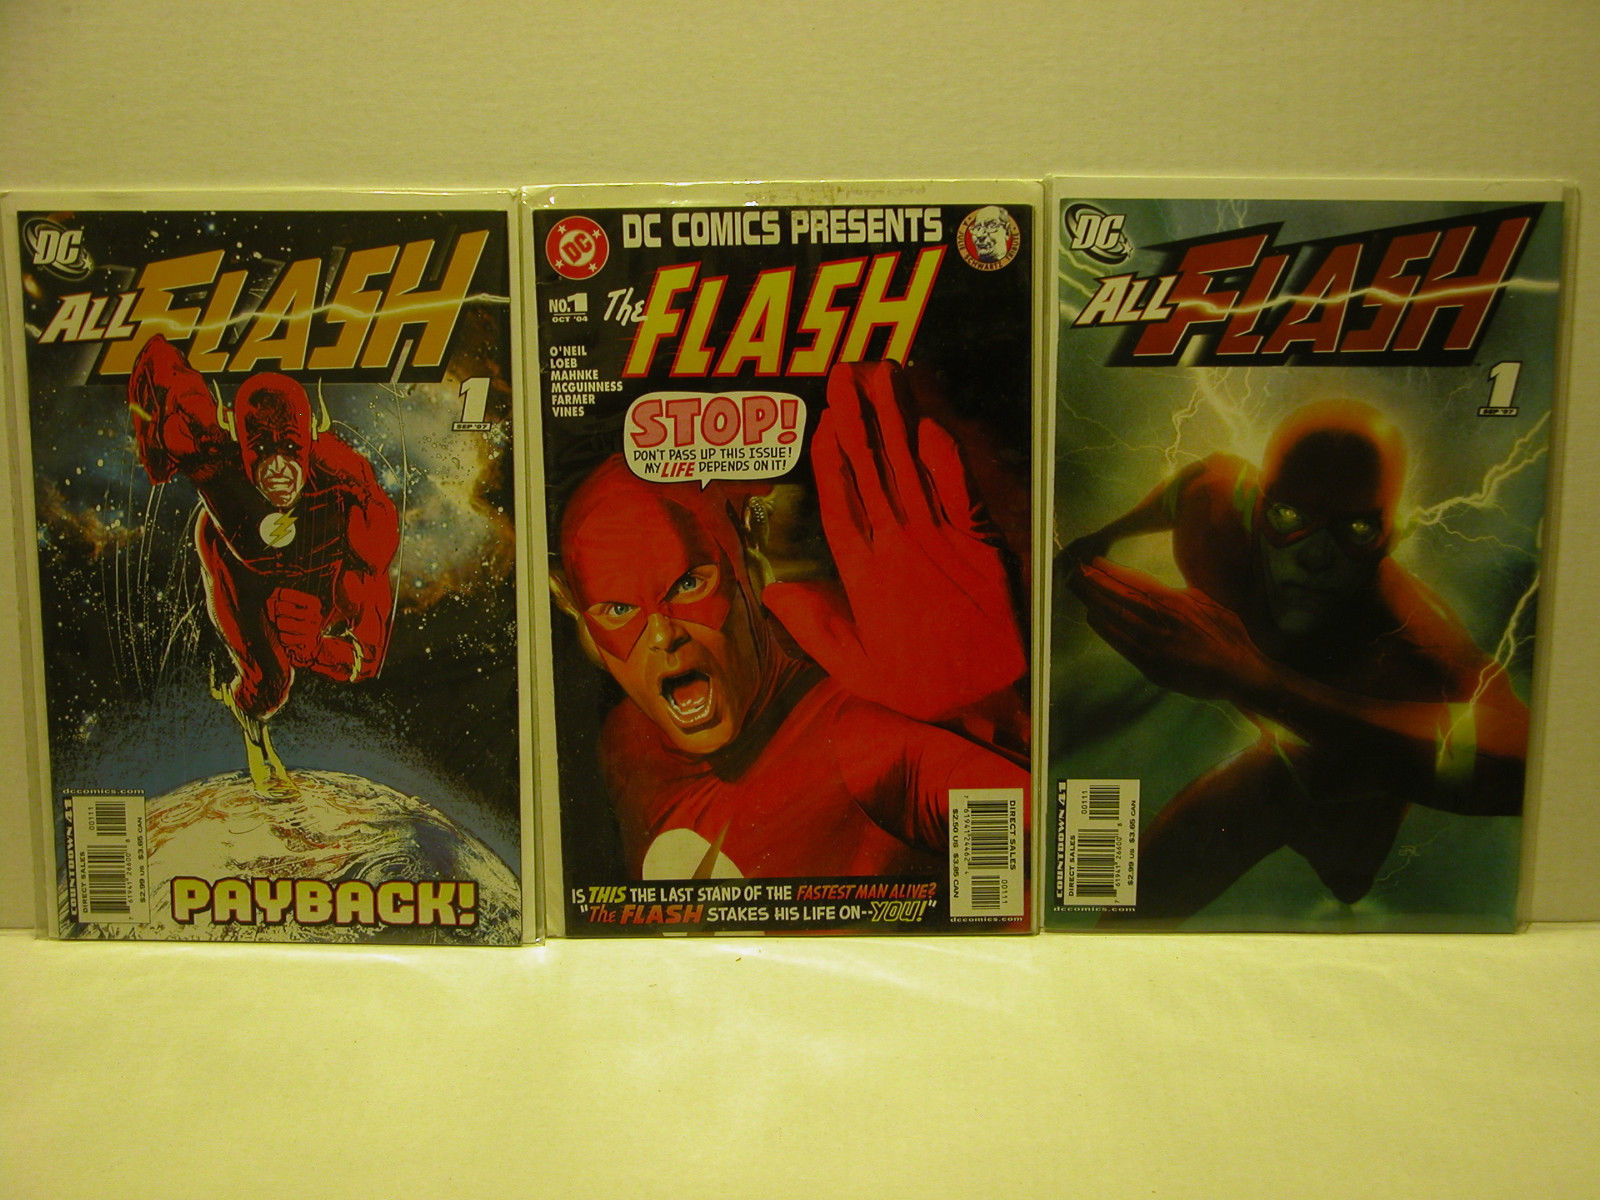 THE FLASH - THREE #1 ISSUES - ALL FLASH + DC COMICS PRESENTS - FREE SHIPPING